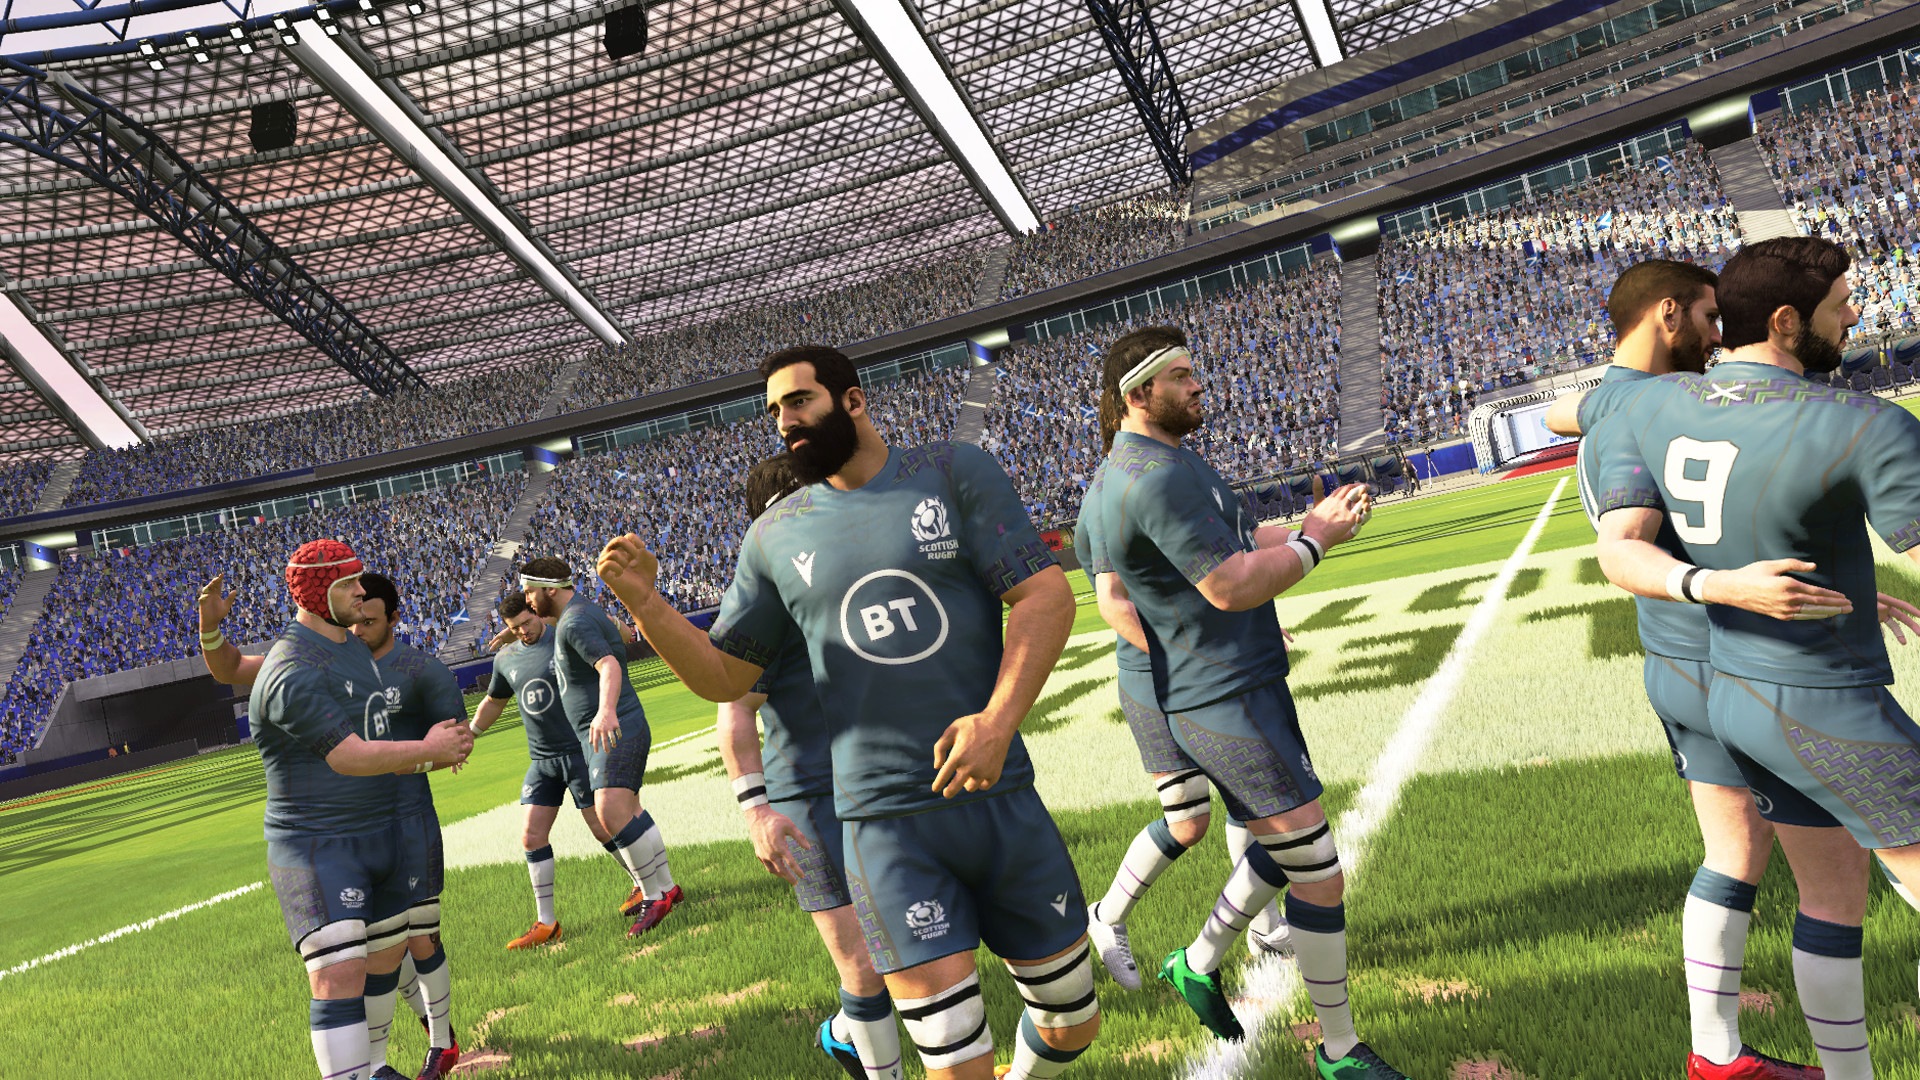 Rugby 20 On Steam